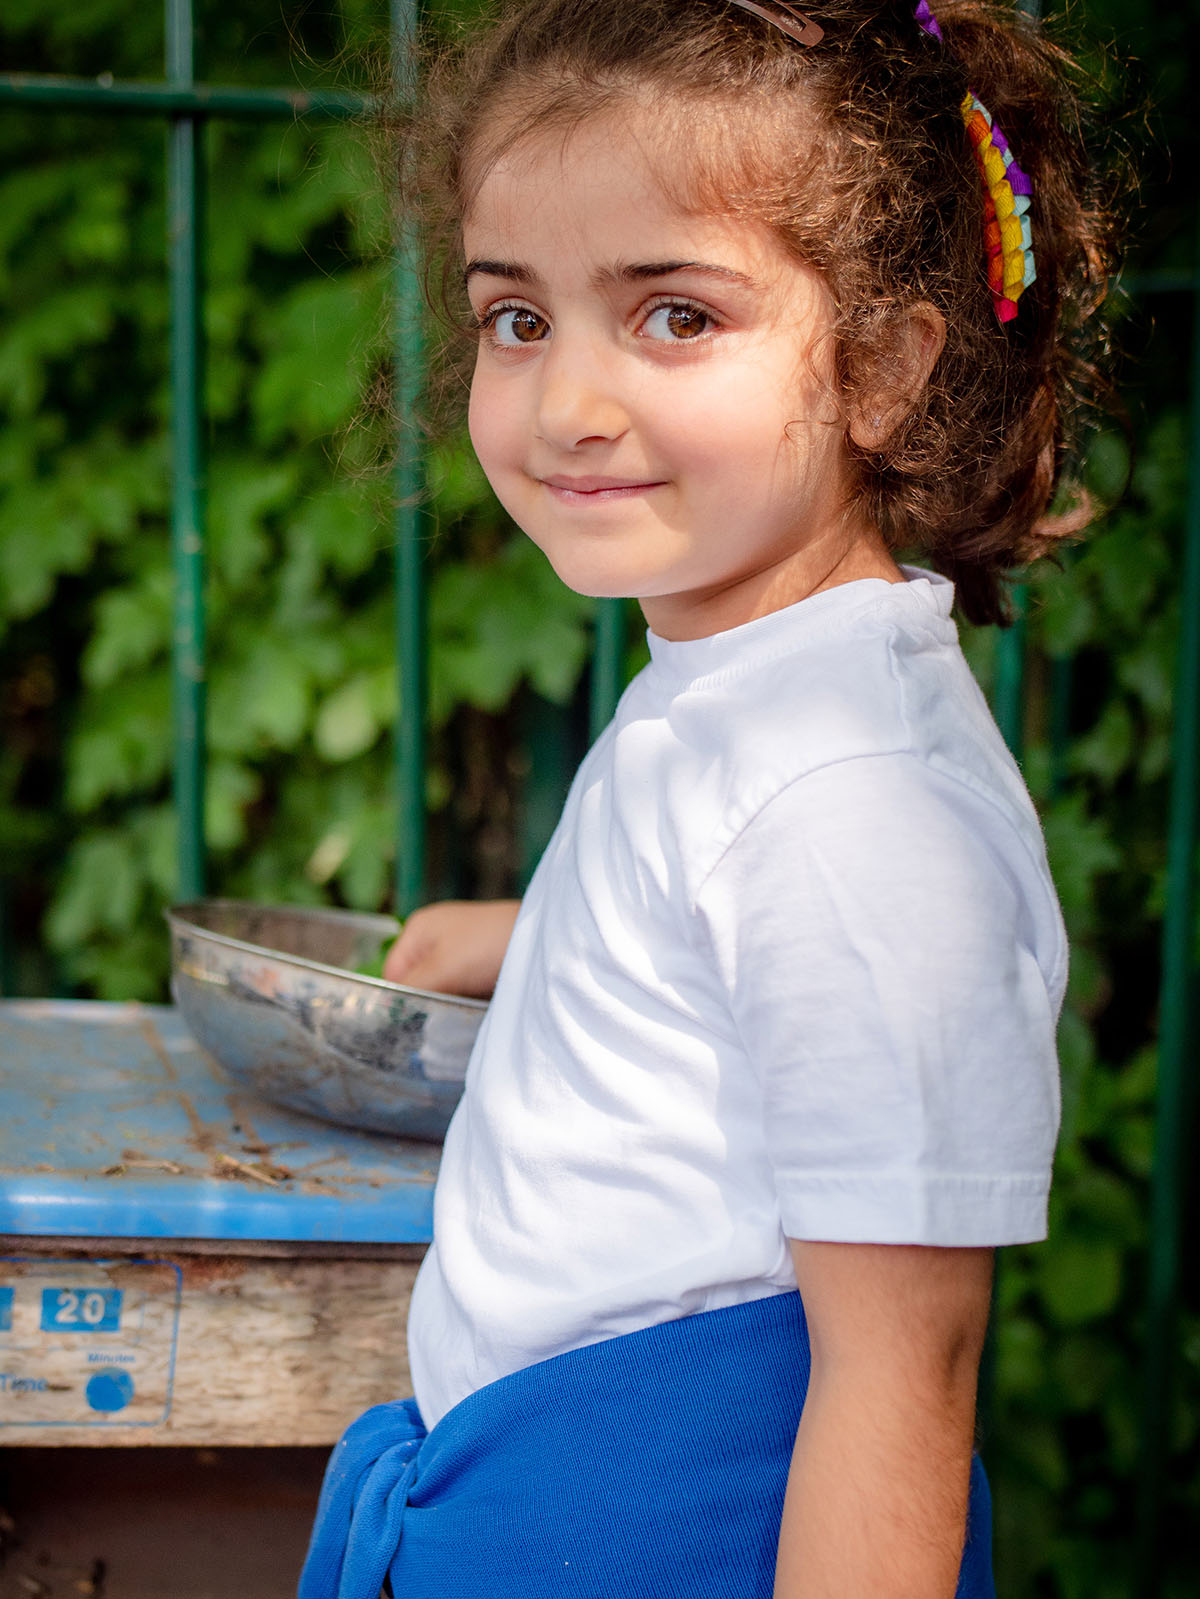 Young girl smiling whilst playing in playground